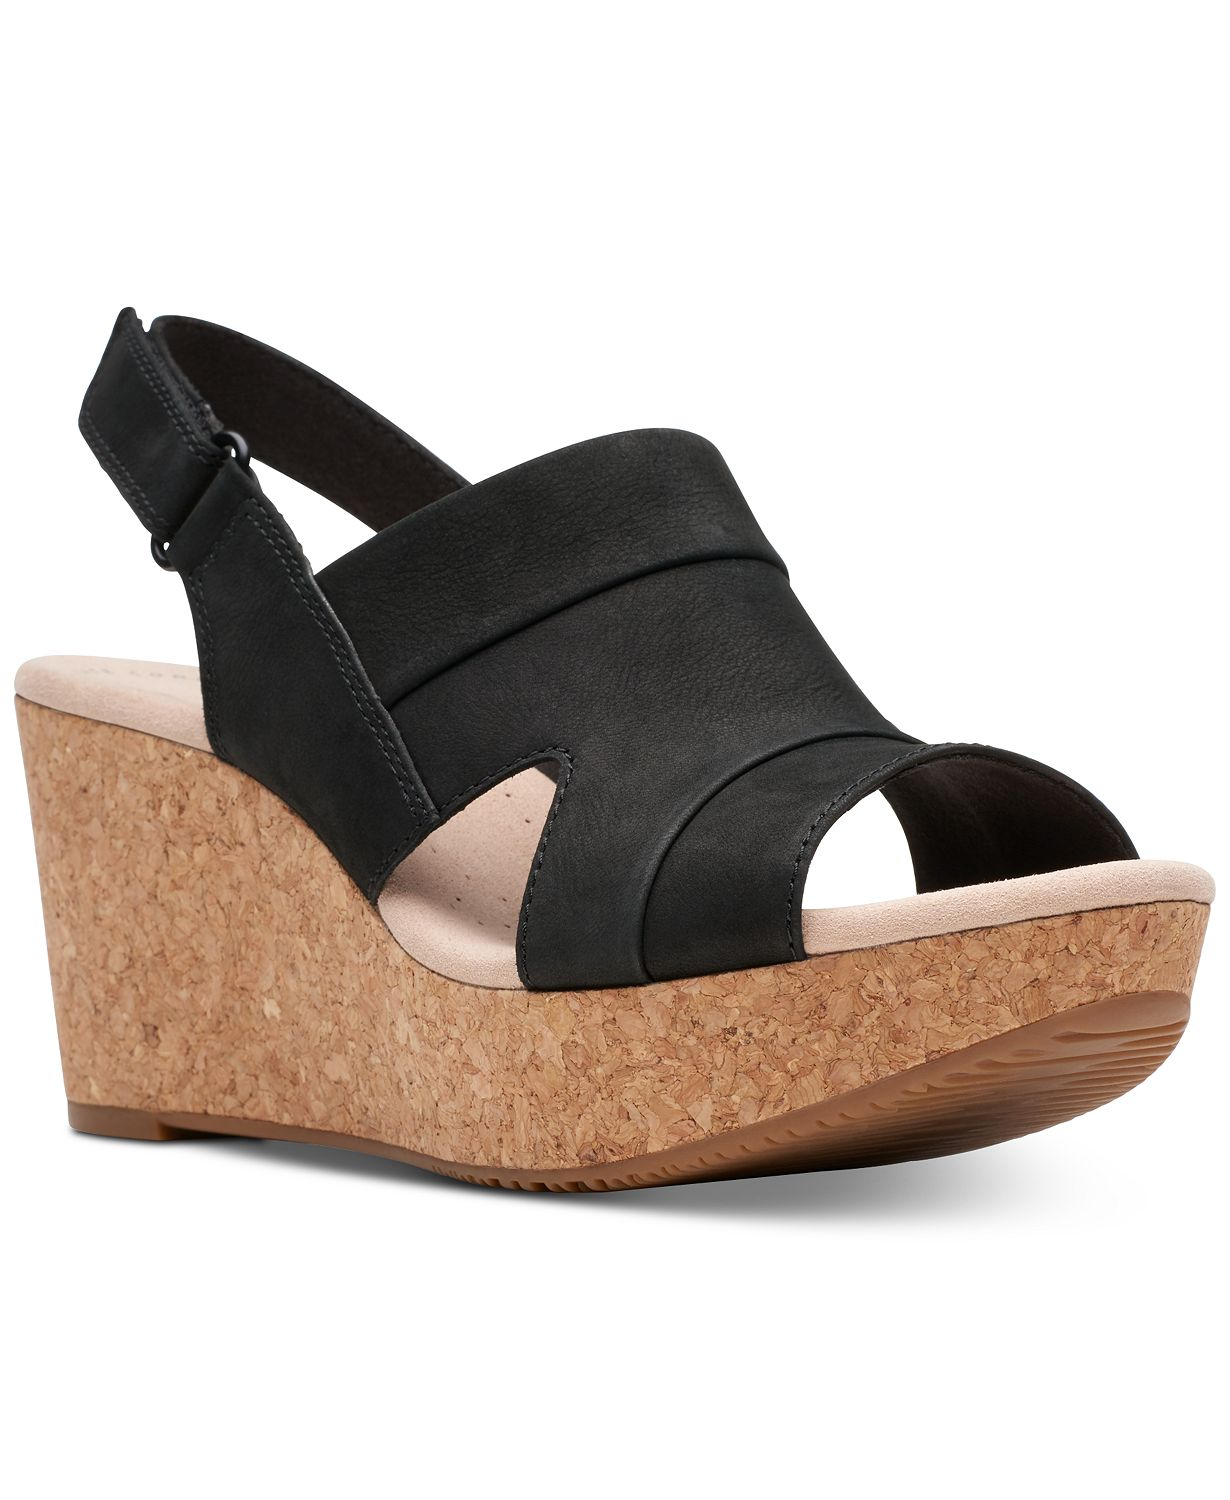 Clarks black wedge sandals